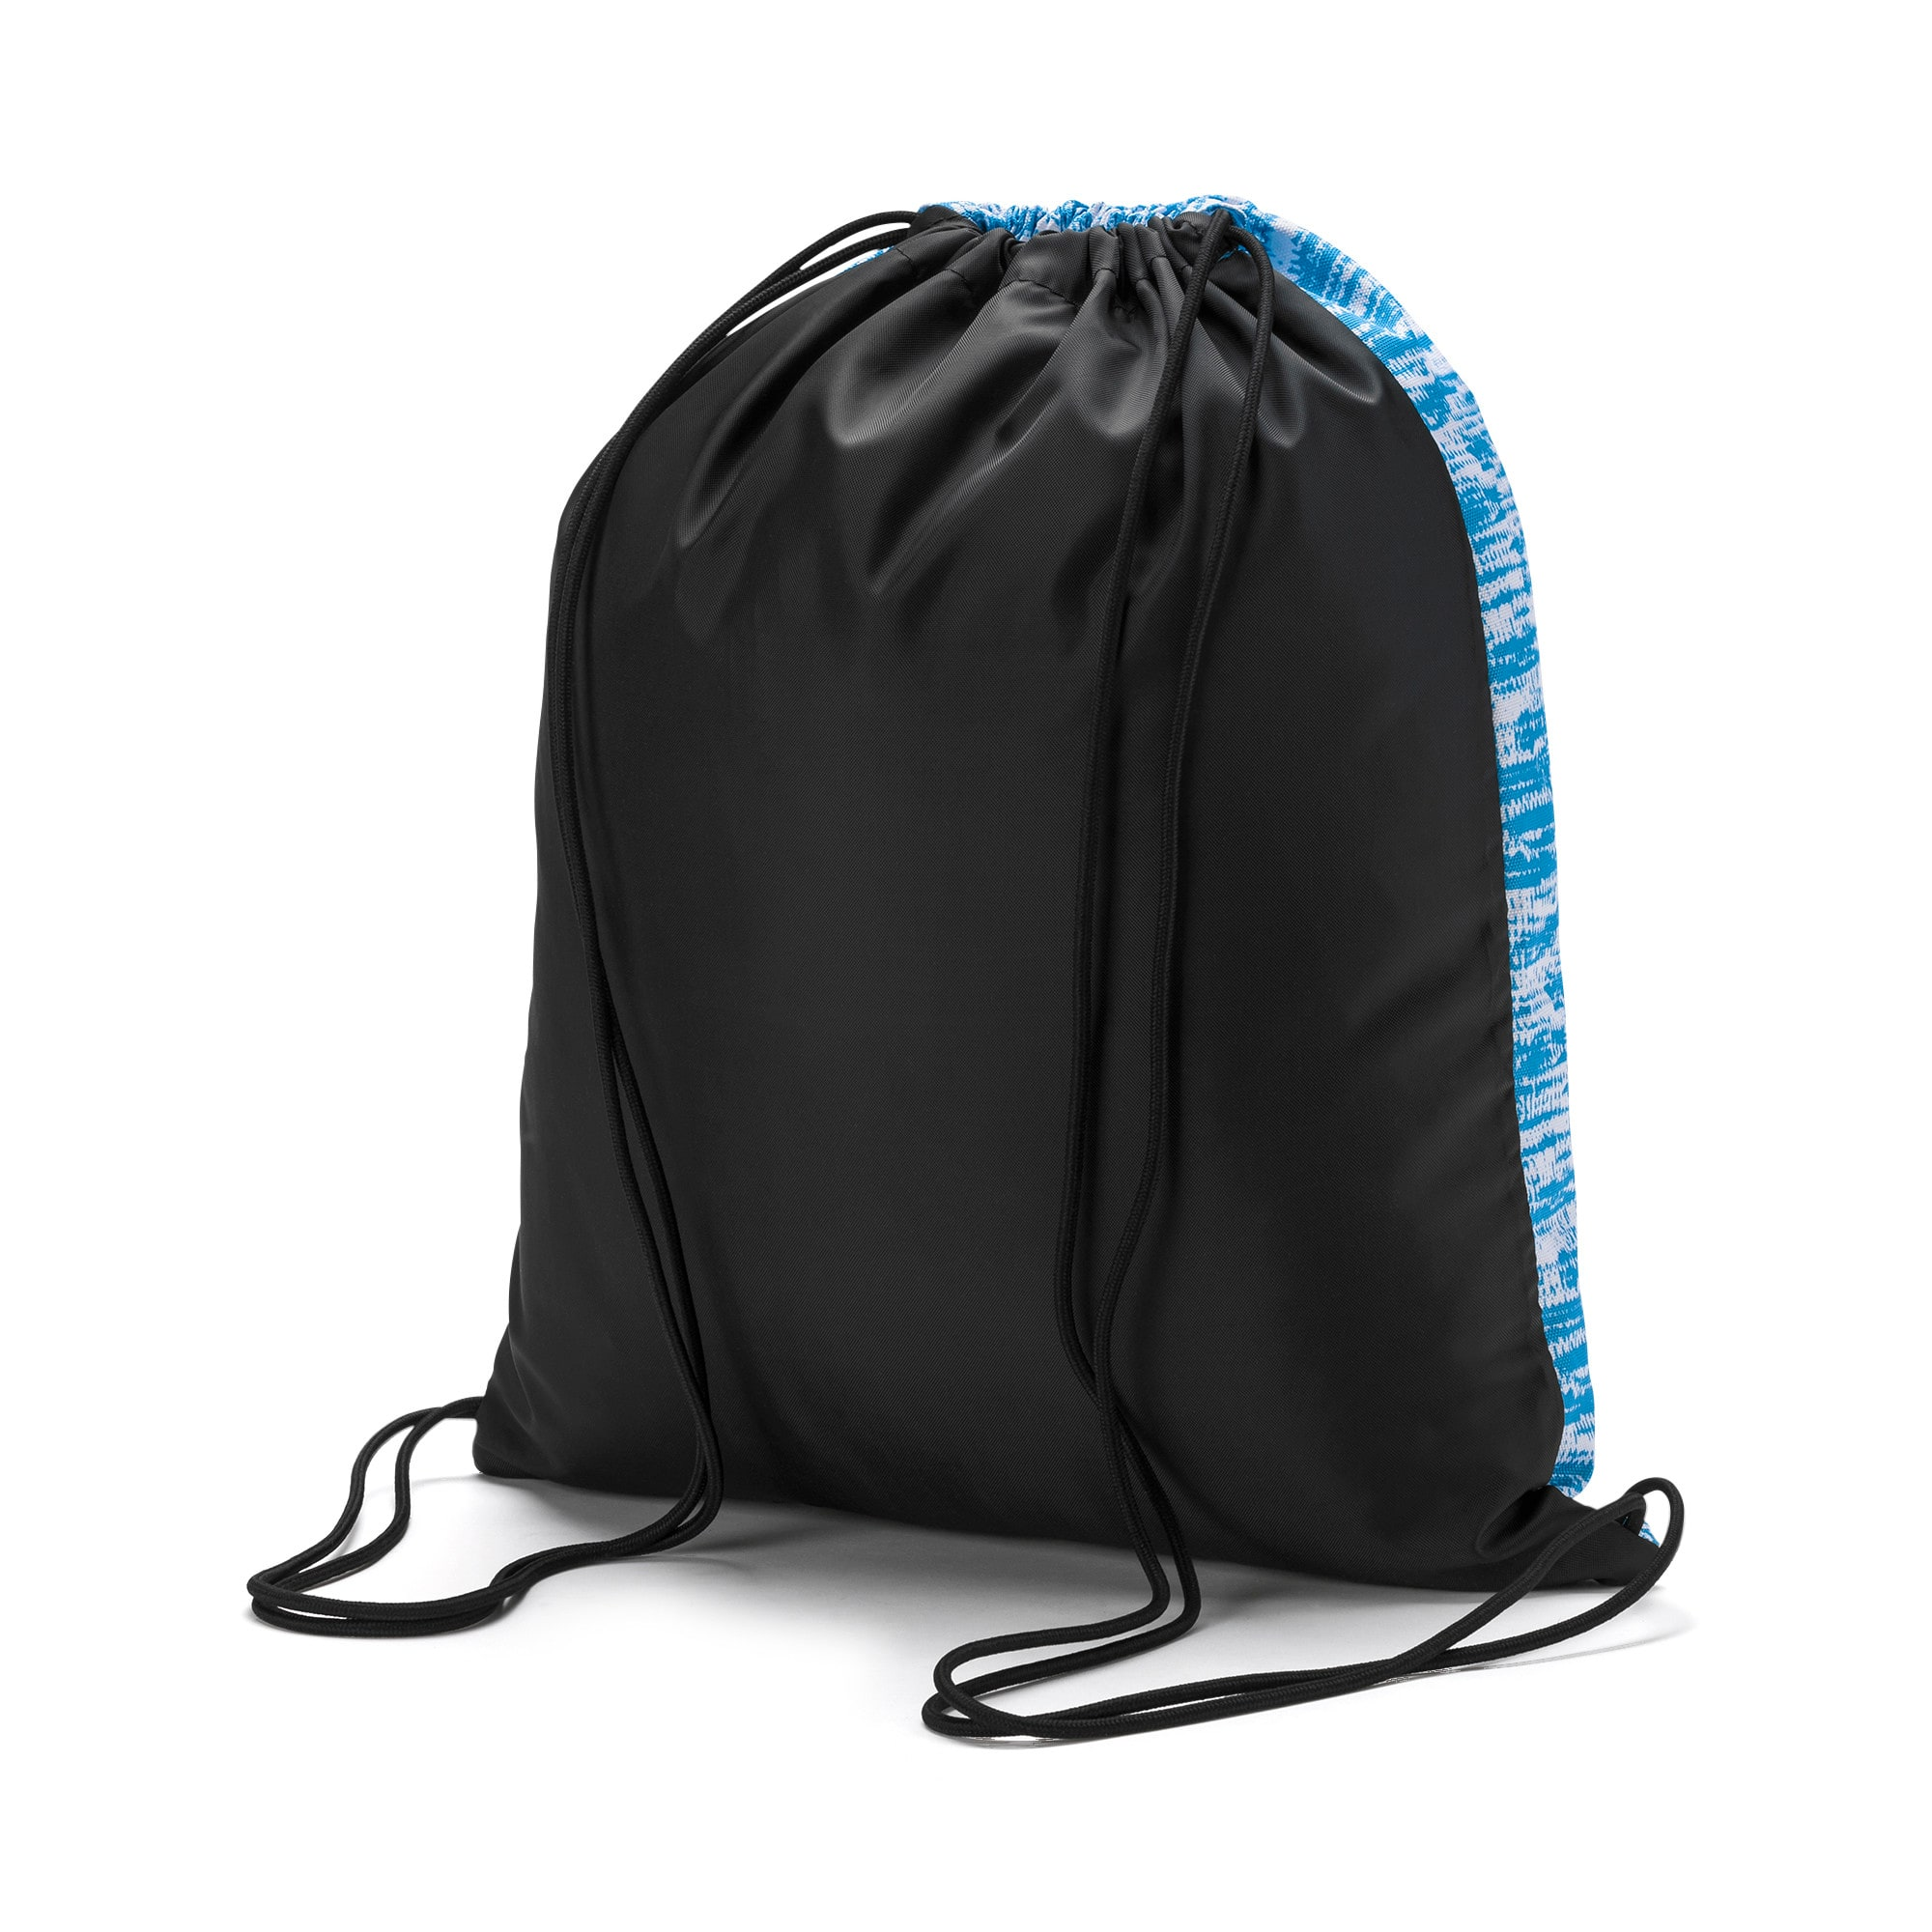 Thumbnail 2 of Olympique de Marseille LIGA Gym Bag, AZURE BLUE-Puma Black, medium